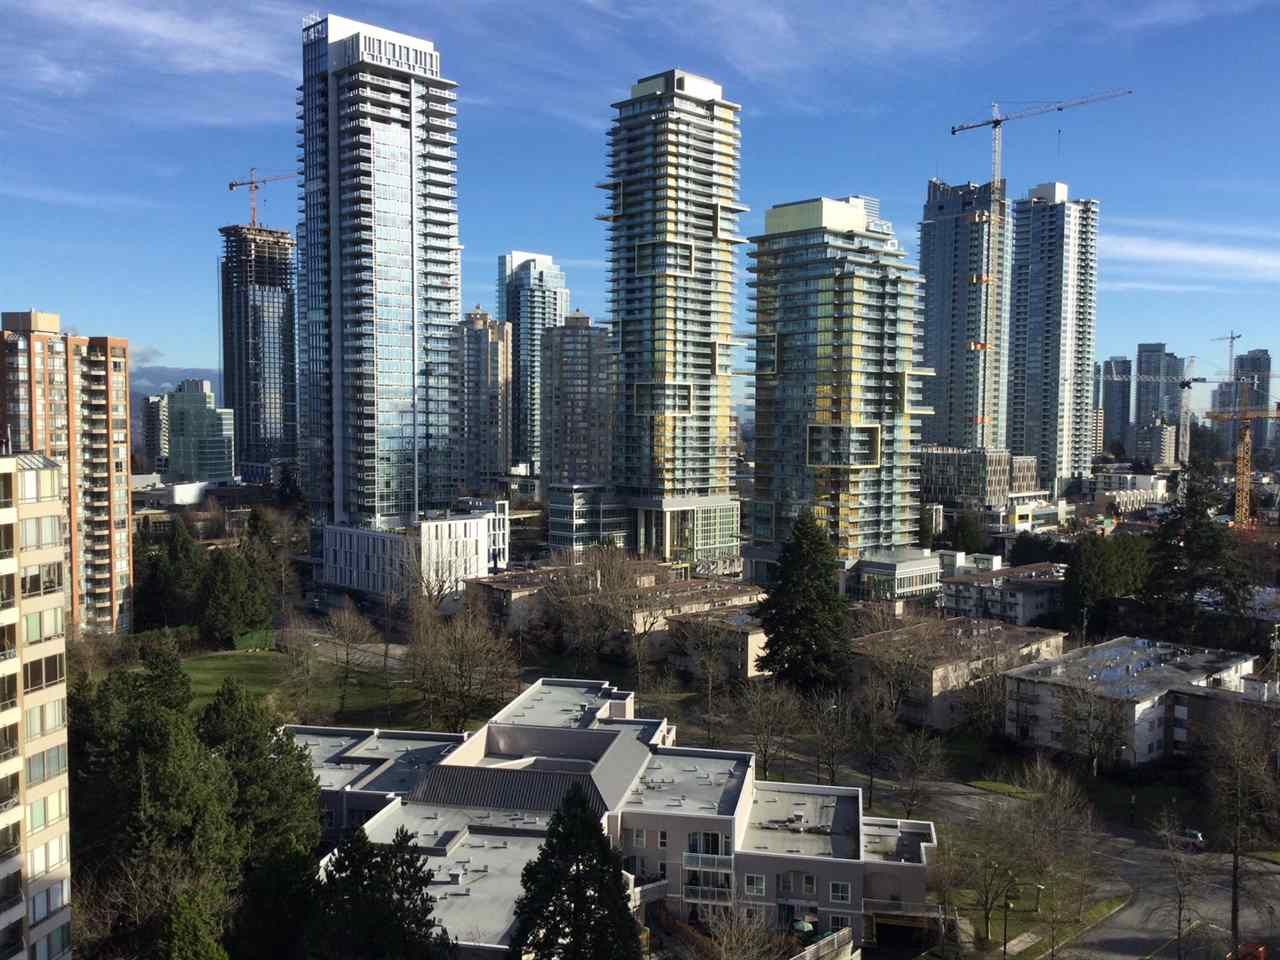 """Photo 11: Photos: 1802 4300 MAYBERRY Street in Burnaby: Metrotown Condo for sale in """"Times Square"""" (Burnaby South)  : MLS®# R2529822"""